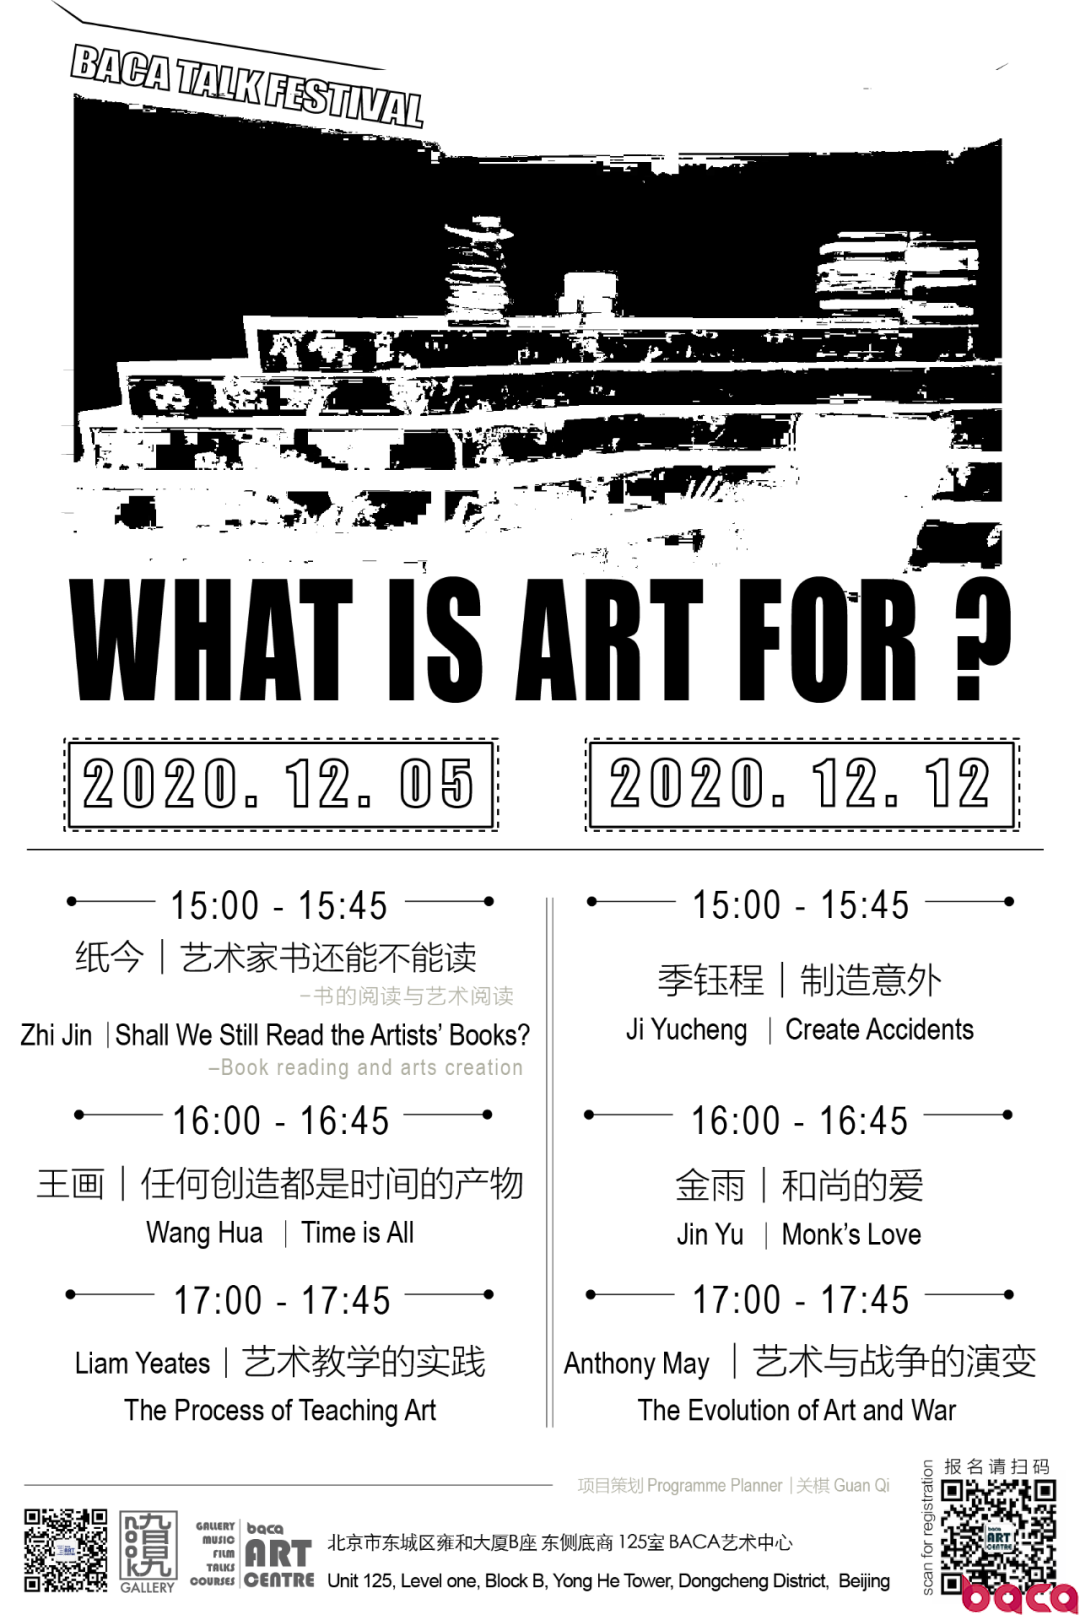 【BACA Talk Festival】What is art for?